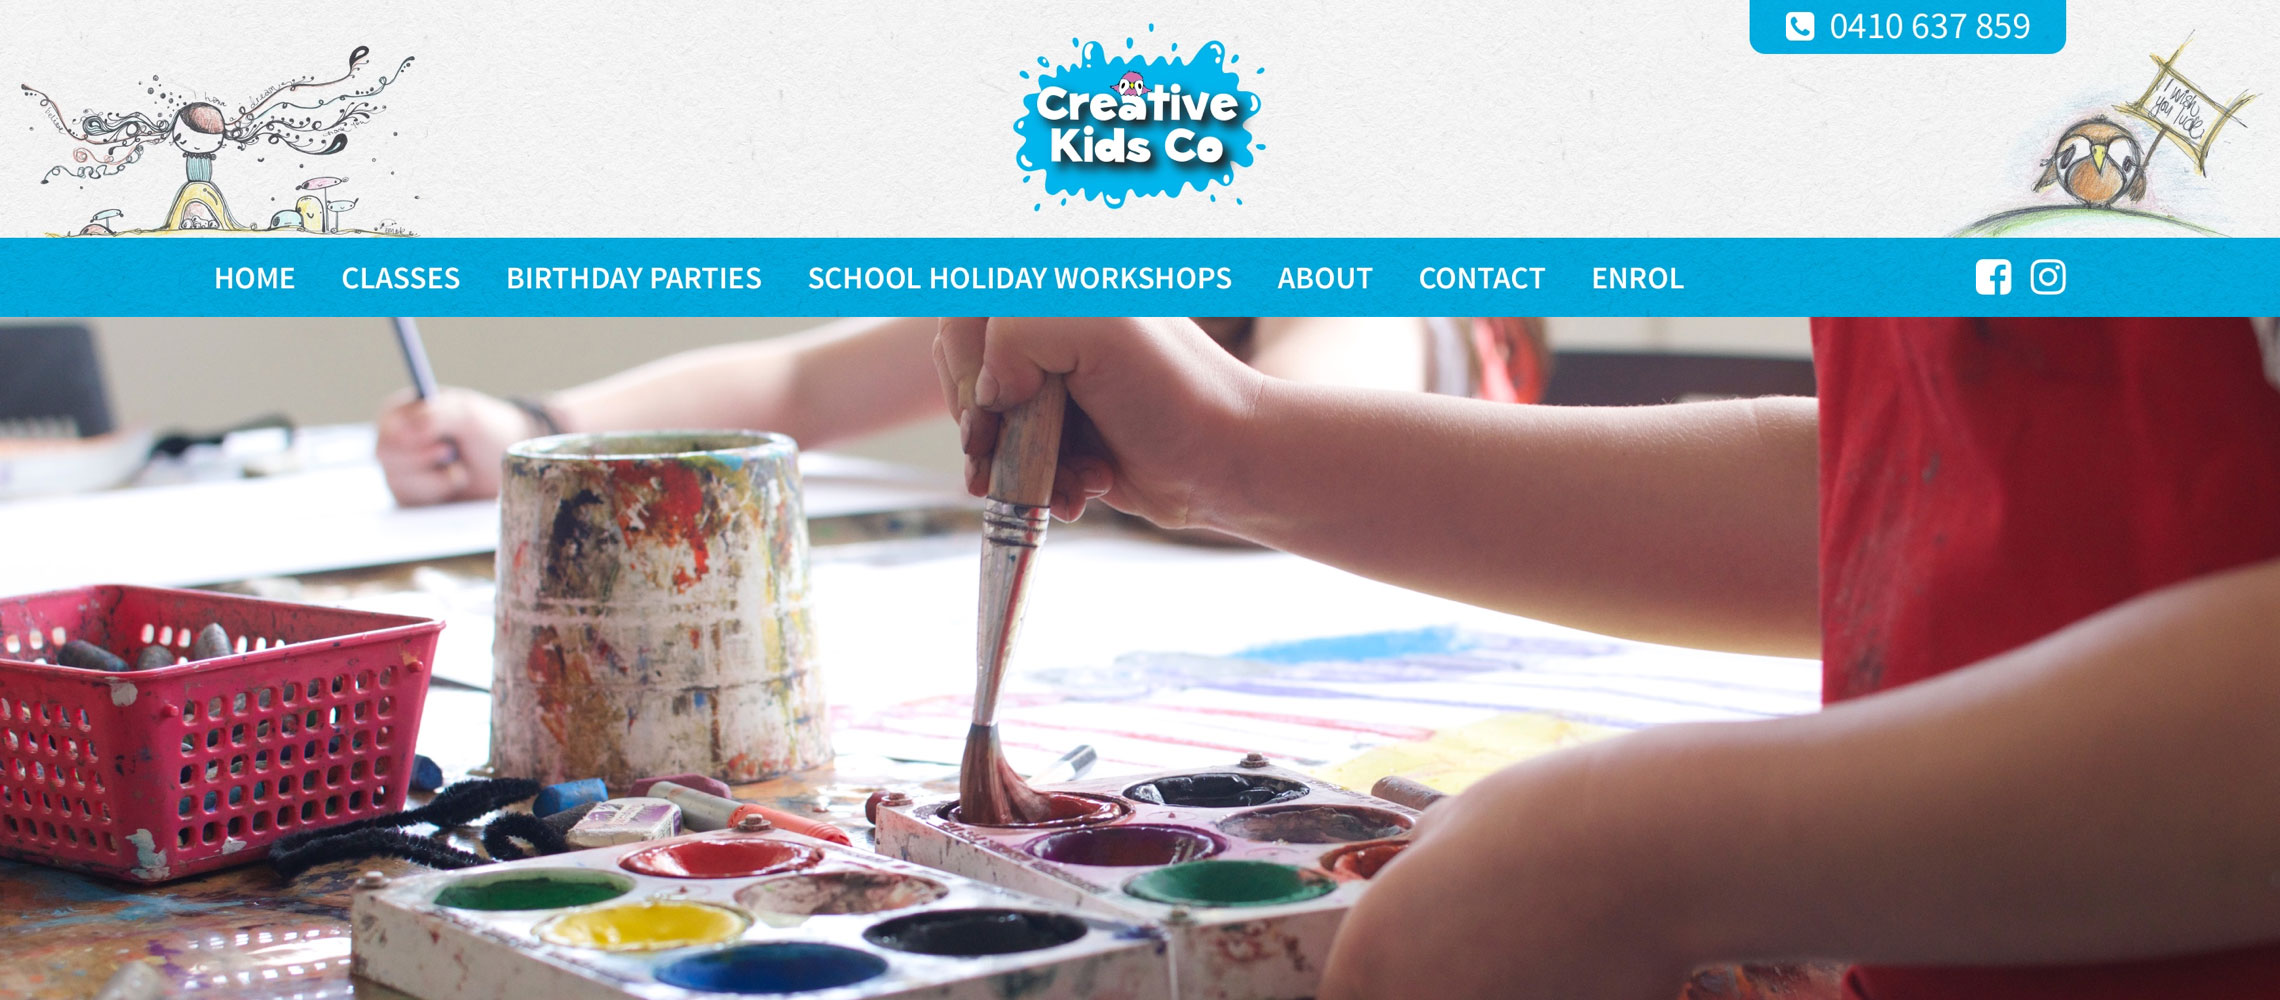 Creative Kids Co